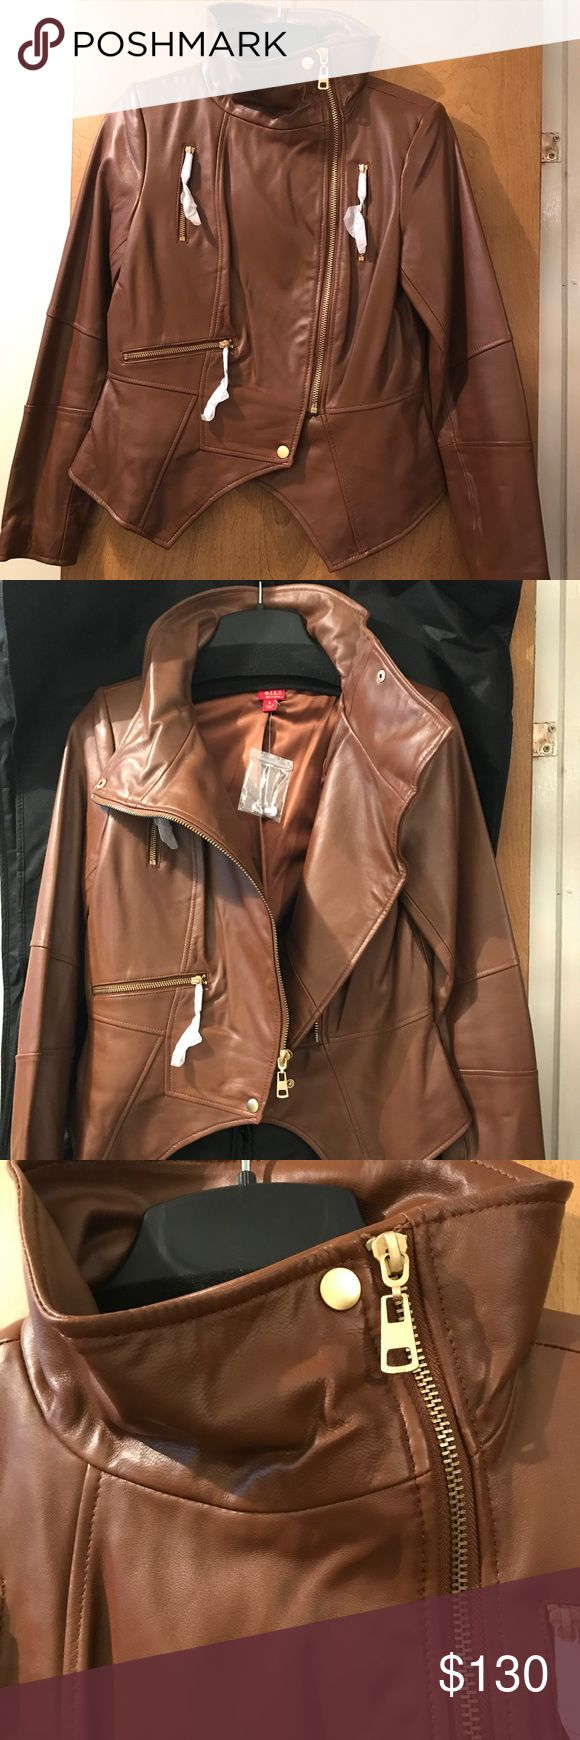 """G.I.L.I. Leather Motorcycle Jacket NEW Brand New G.I.L.I. Leather Motorcycle Jacket in British Tan gold hardware Size 6. From Qvc- item number A256717. Super chic, on trend yet classic. Info from QVC: Slim fit; cut to contour lines of the body. The seam at the waist flatters & defines your shape,designed to be worn comfortably over a tank/shell.If you prefer to wear with a sweater size up. Length: 23-1/8"""" to 24-3/8"""" Content: 100% leather;lining 96% polyester/4% spandex. Comes w/Dustbag…"""